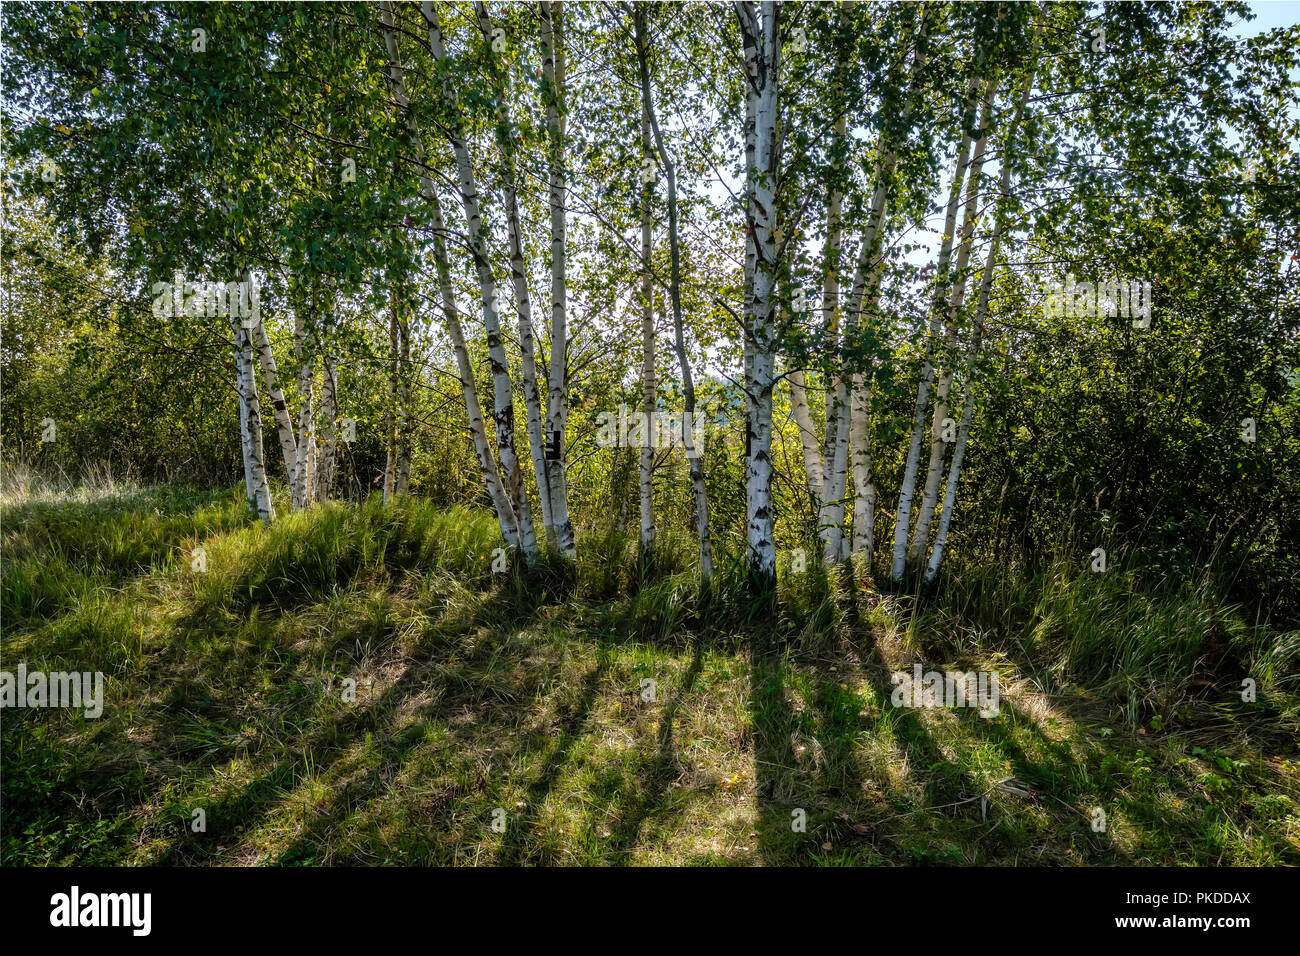 0bb5693a1c6c8 birch tree trunk texture in direct sunlight in a bright summer day with sun  shining through the leaves. landscape shadows in foreground